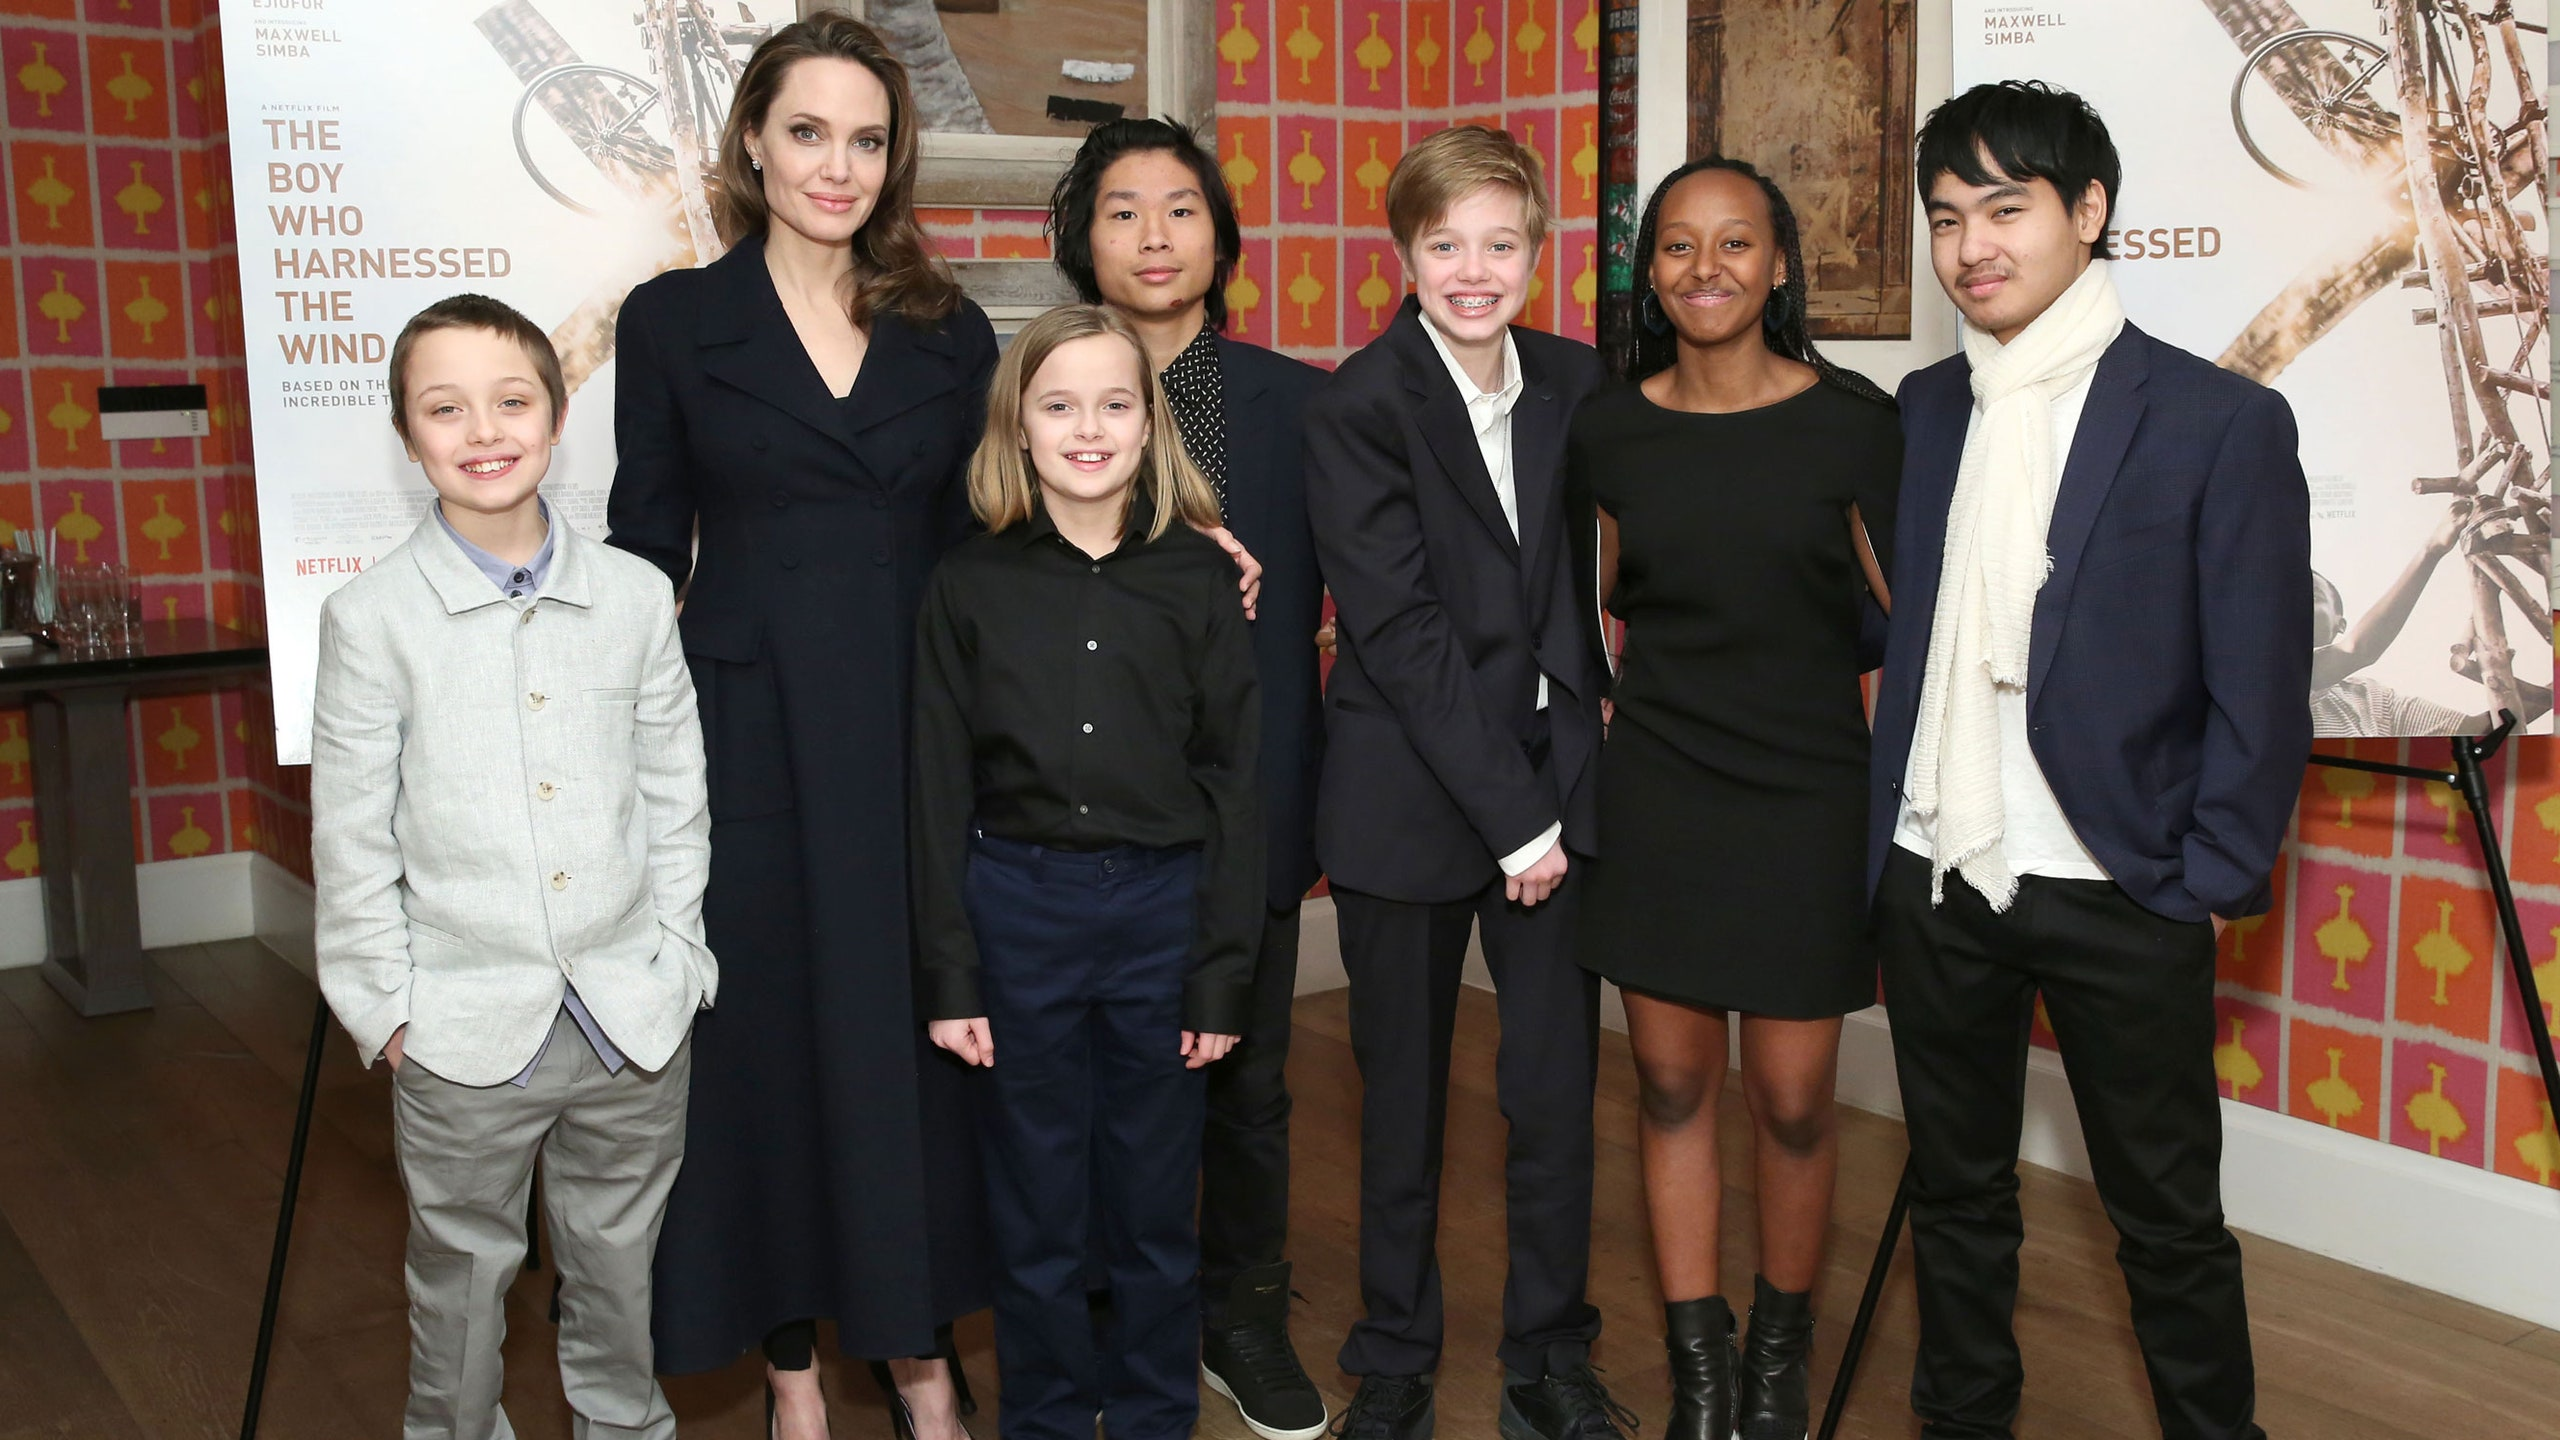 Angelina Jolie with her six children (whom she shares with ex-husband Brad Pitt)